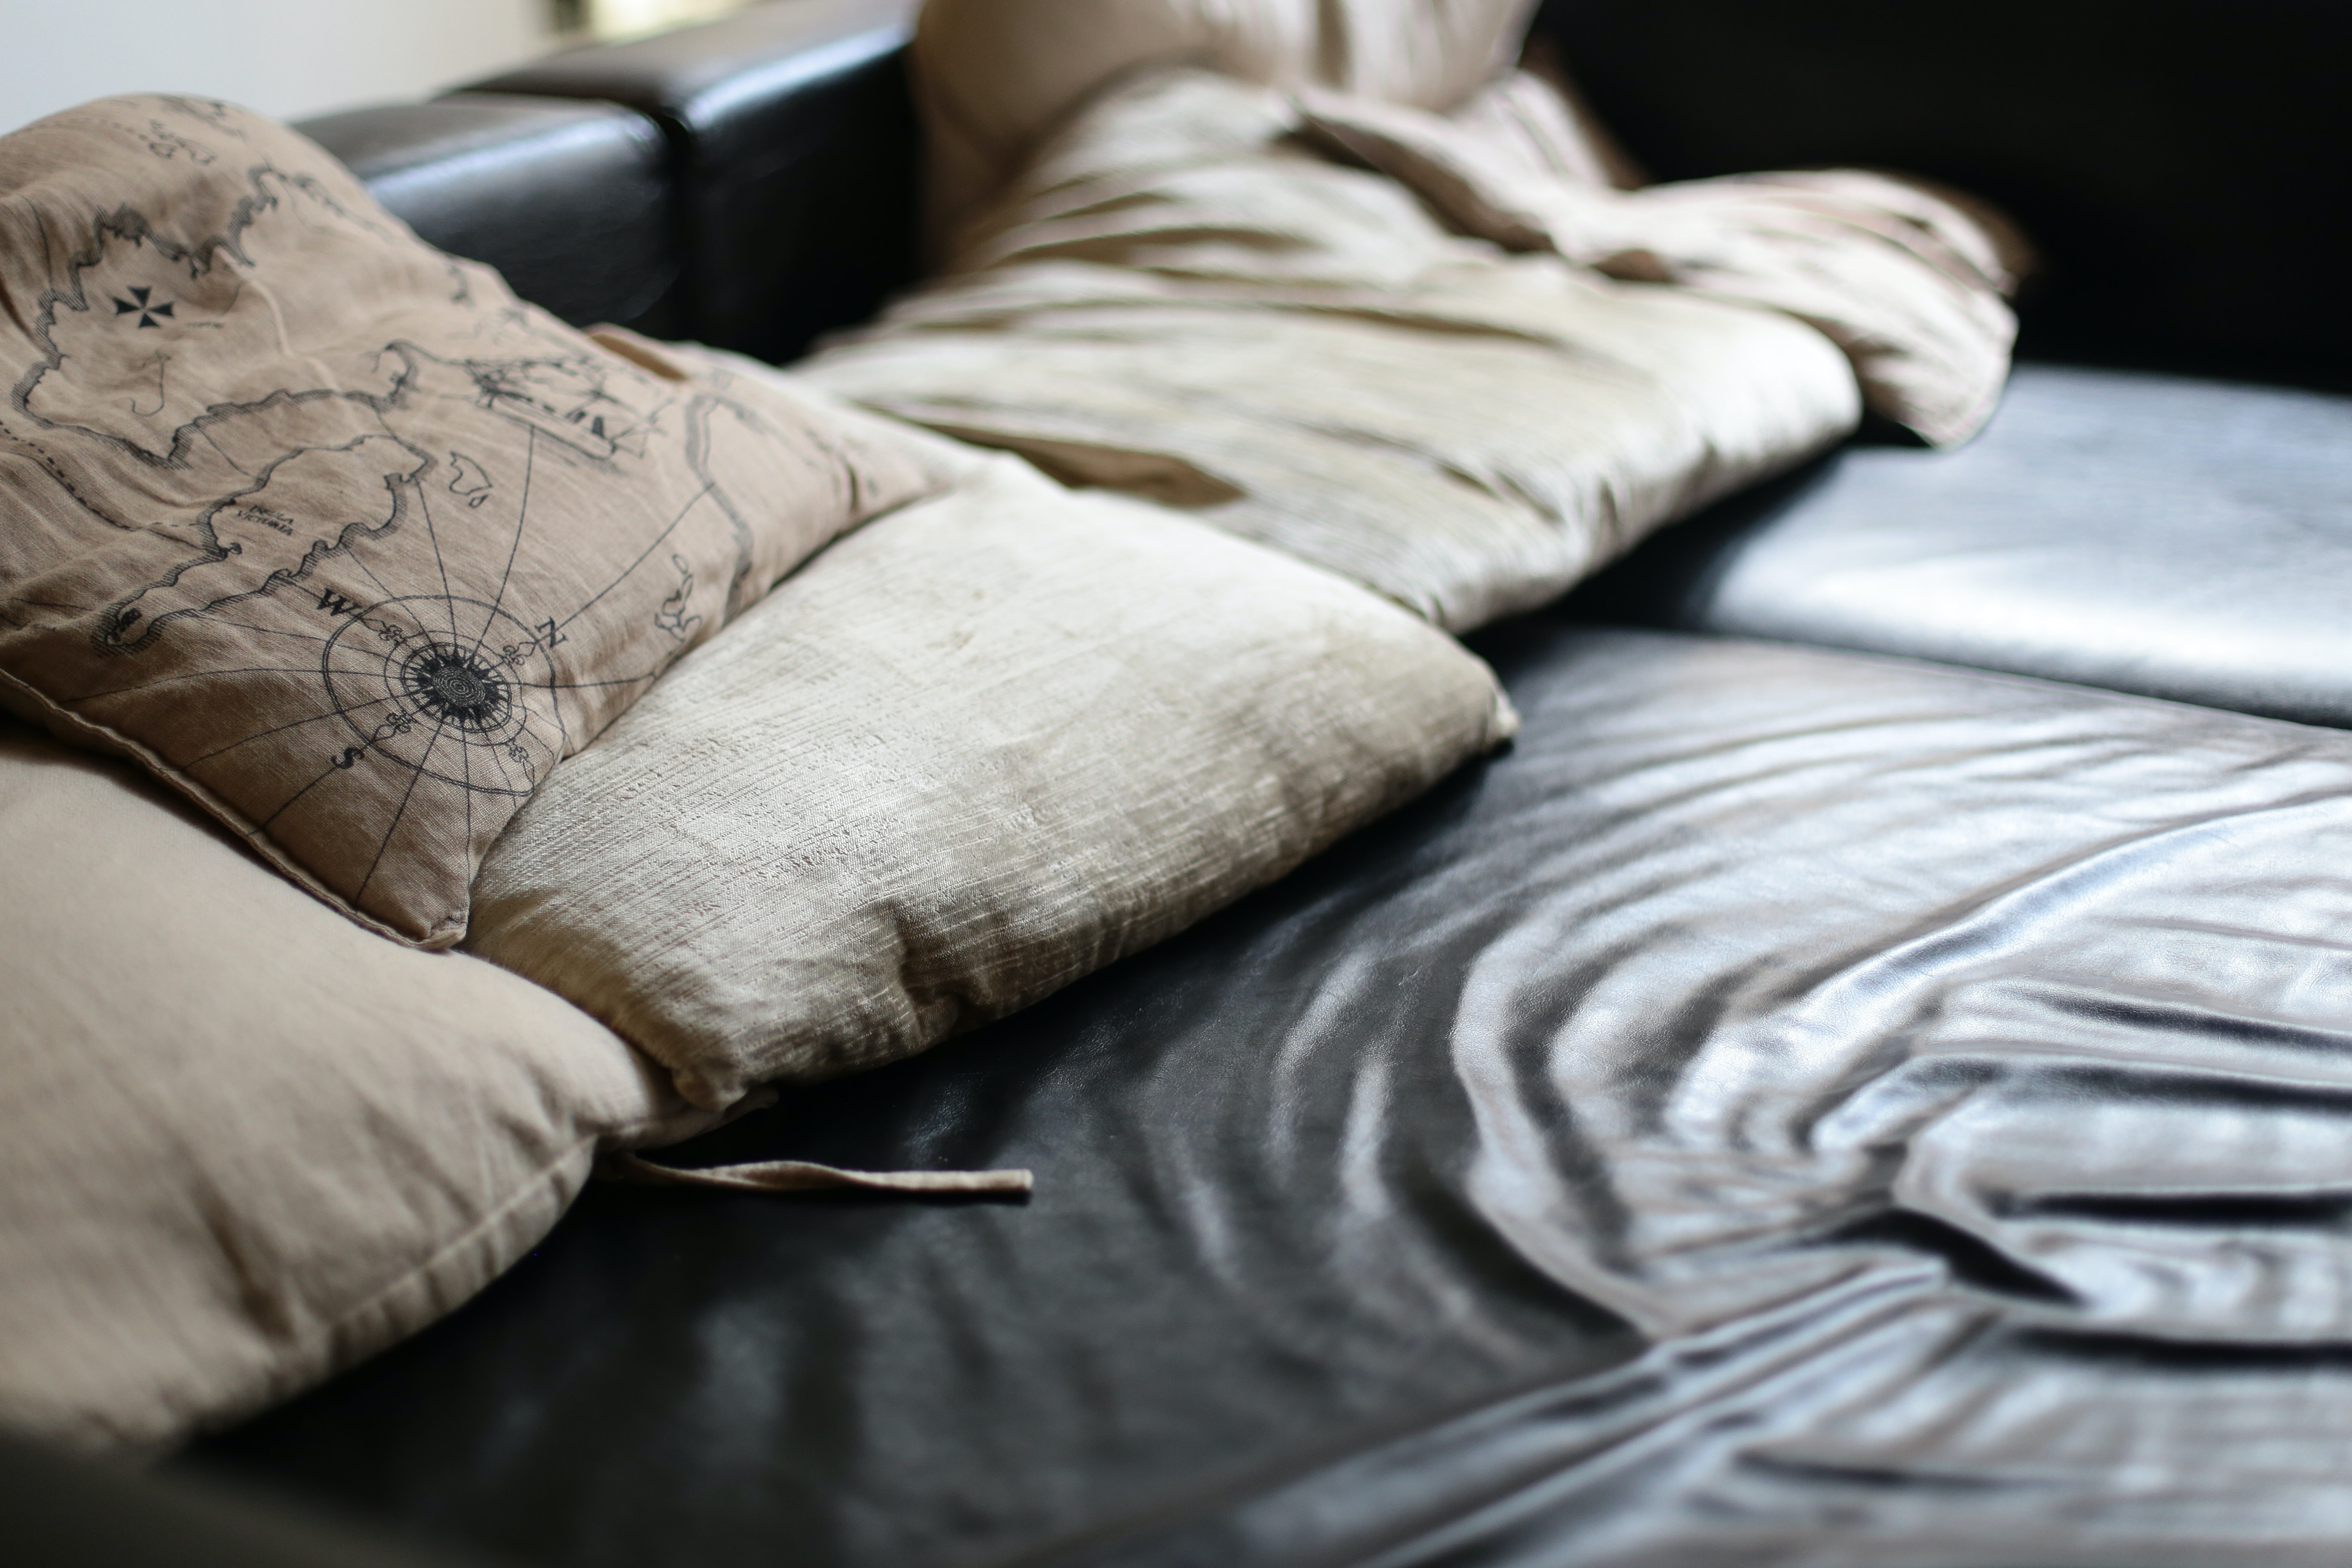 A leather couch with beige pillows and pillows with a map on it